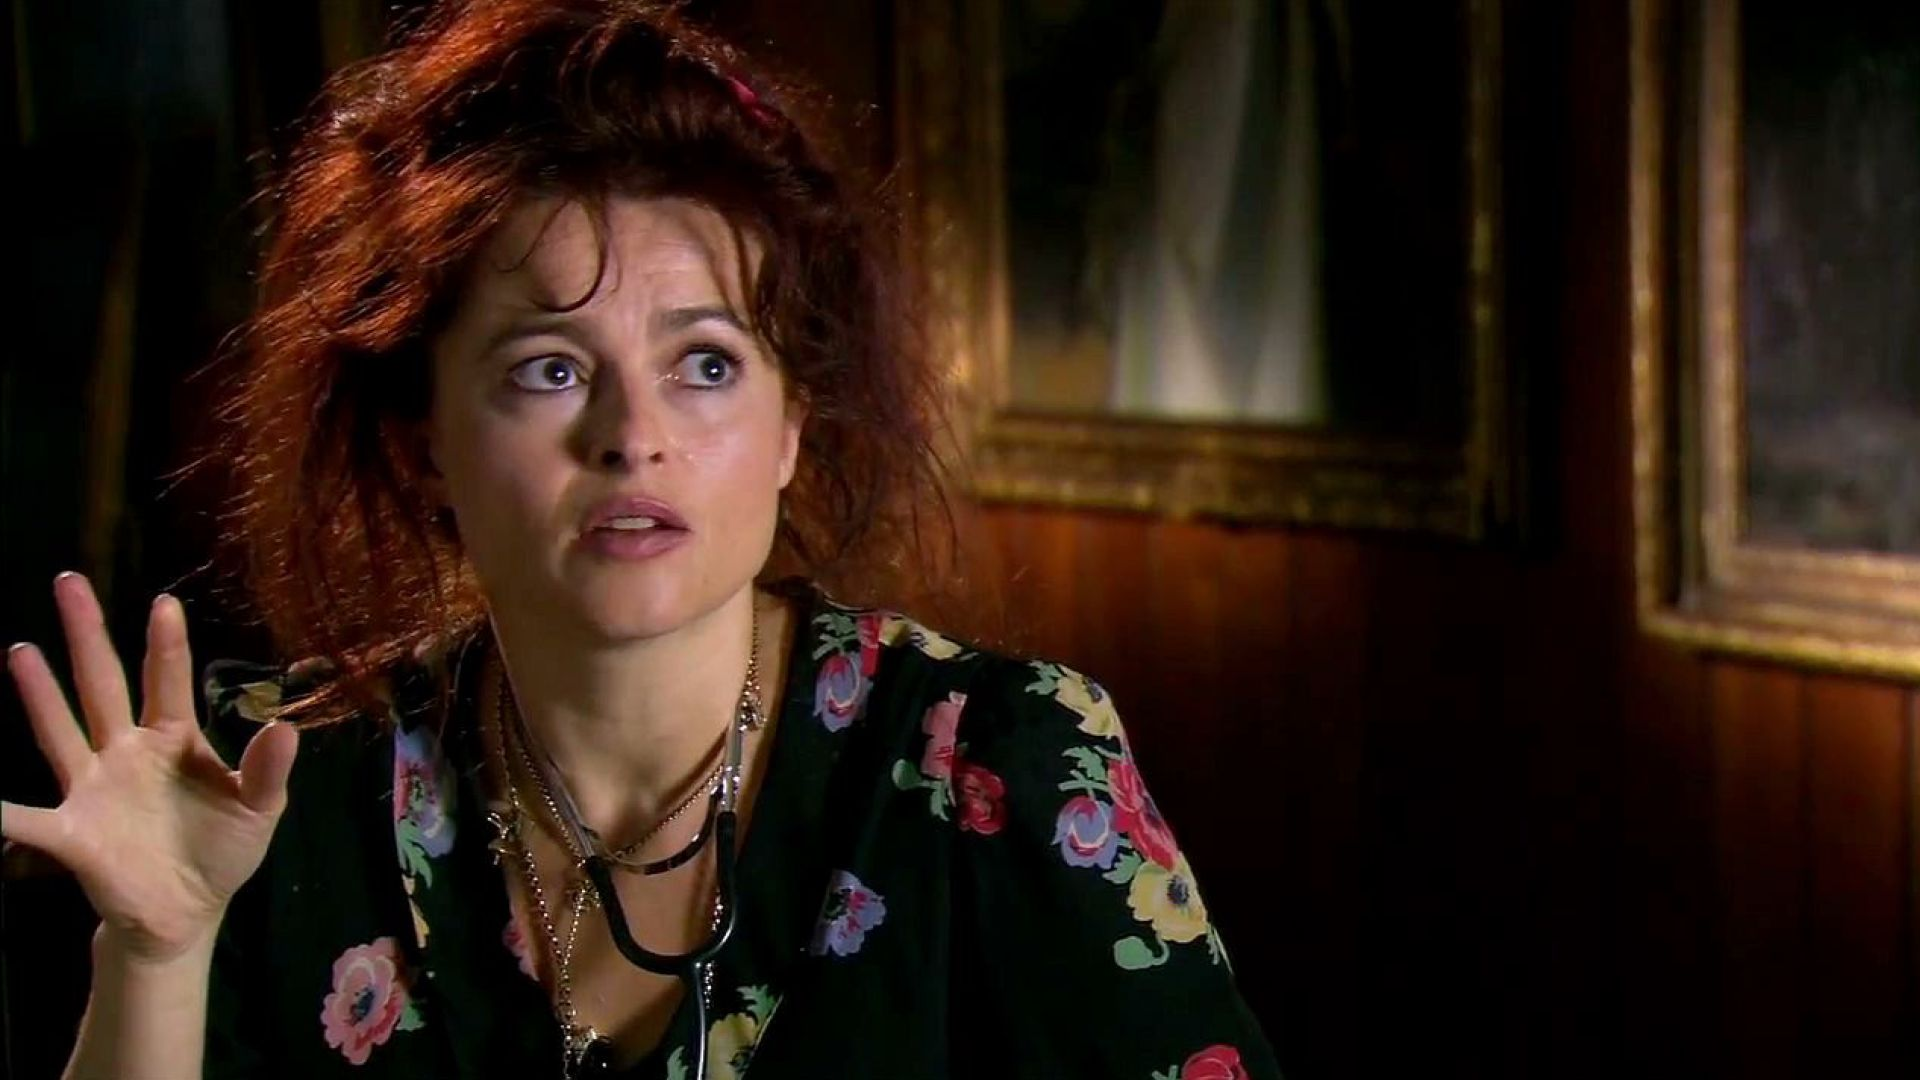 Helena Bonham Carter on playing a lonely, drunk psychiatrist in Dark Shadows